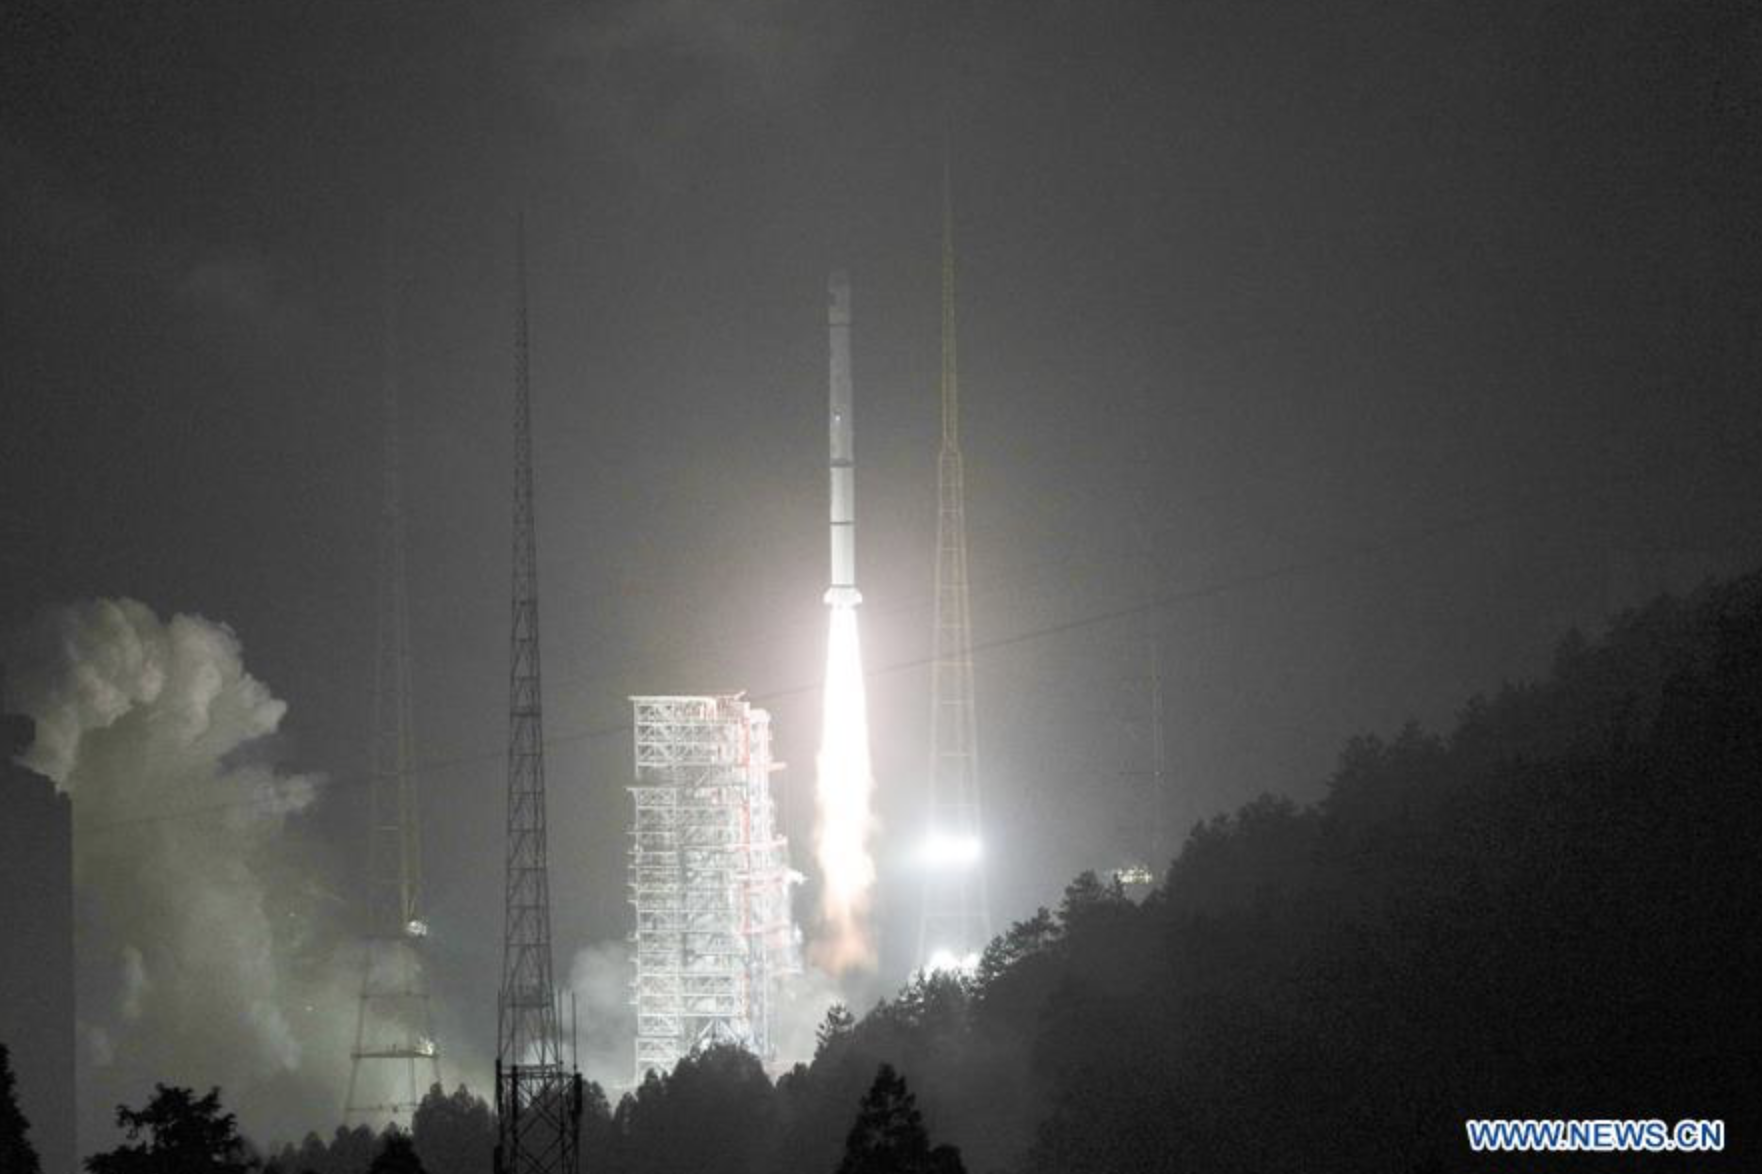 New BeiDou Navigation Satellite